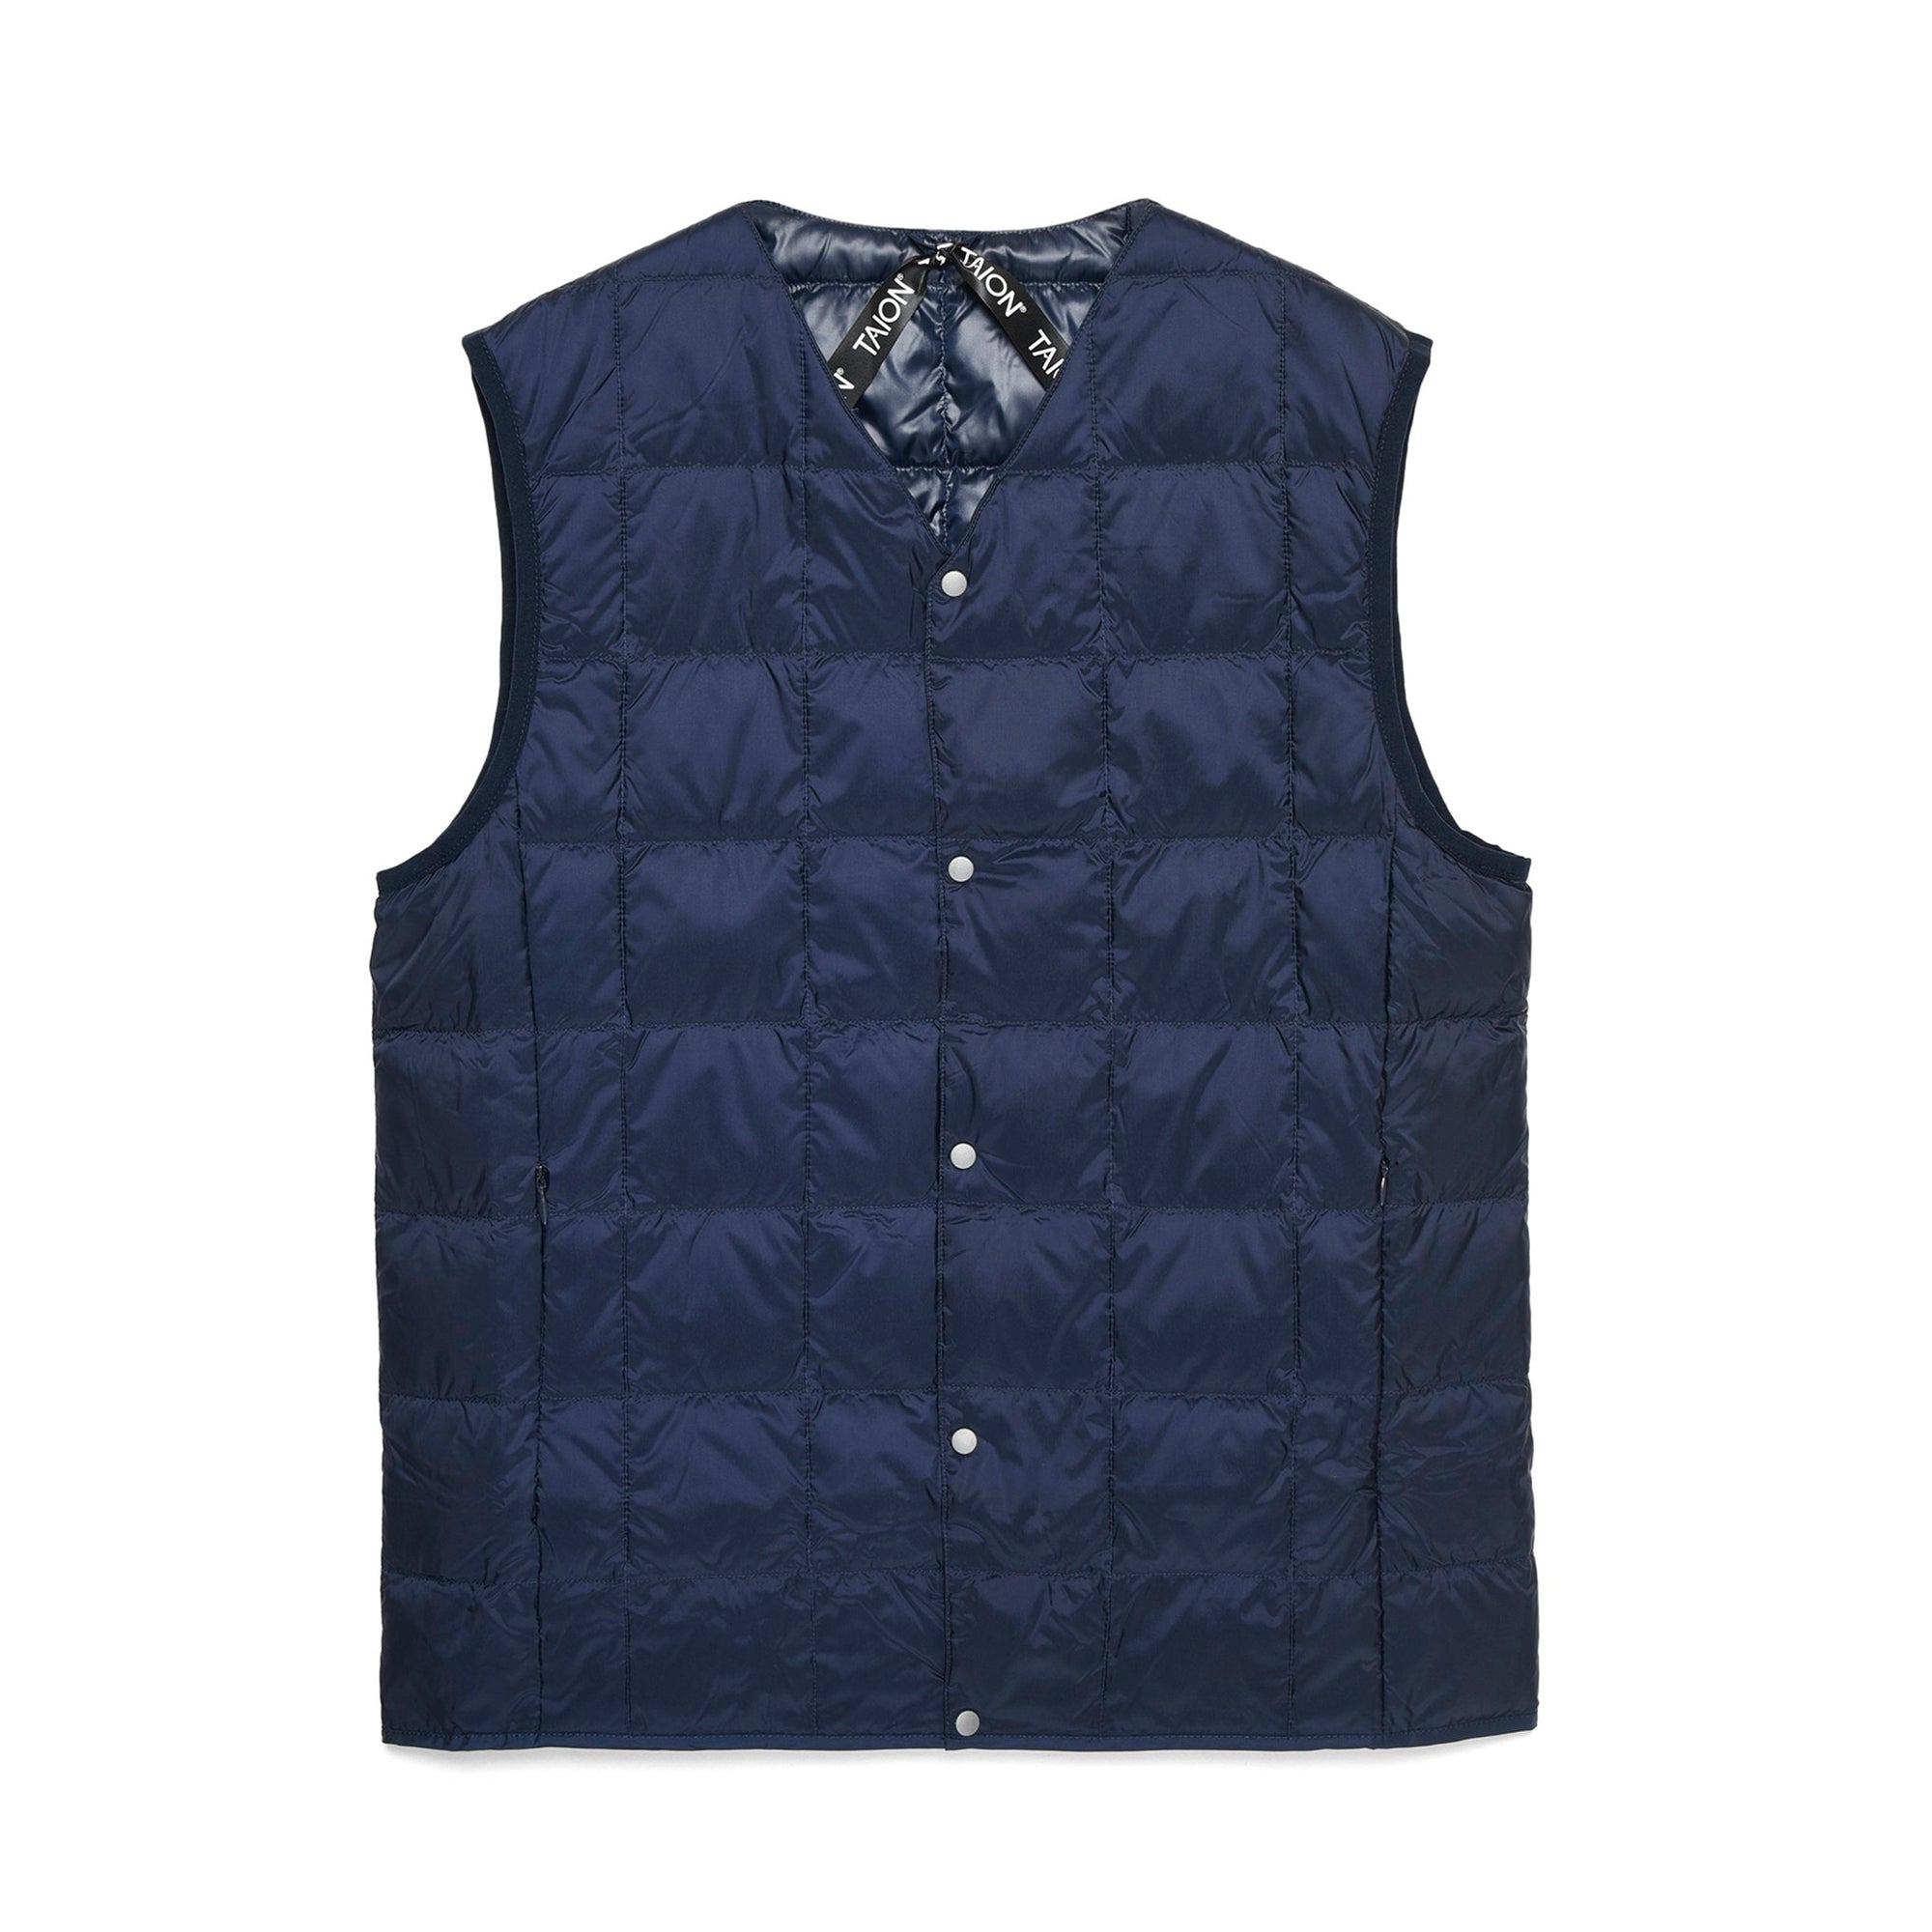 Taion V Neck Button Down Vest: Navy - The Union Project